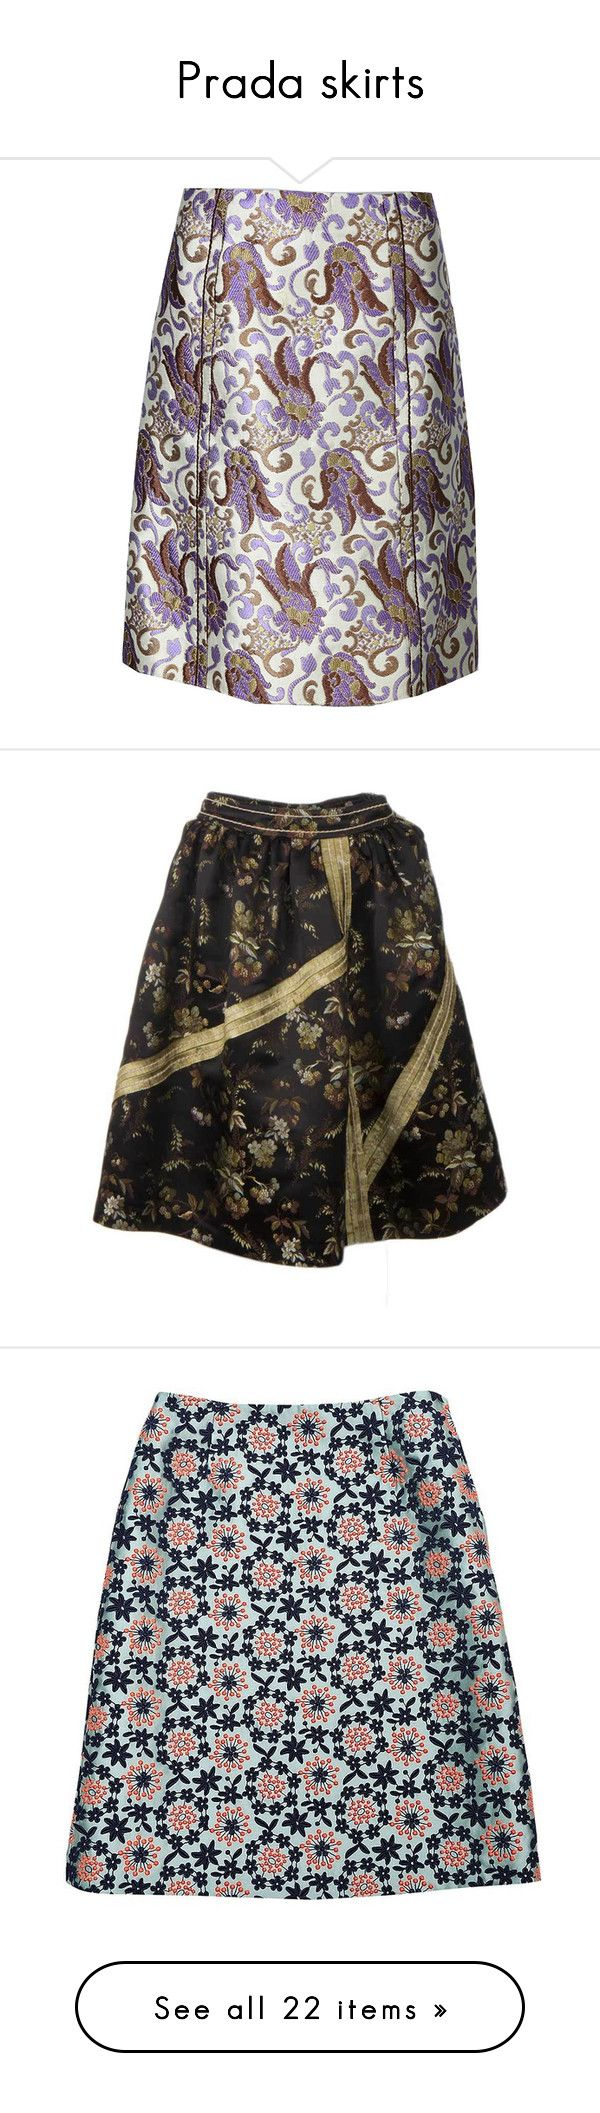 """Prada skirts"" by missloveschic ❤ liked on Polyvore featuring skirts, tulip skirt, prada, prada skirt, black skirt, black knee length skirt, green skirt, beige skirt, yellow skirt and a line skirt"